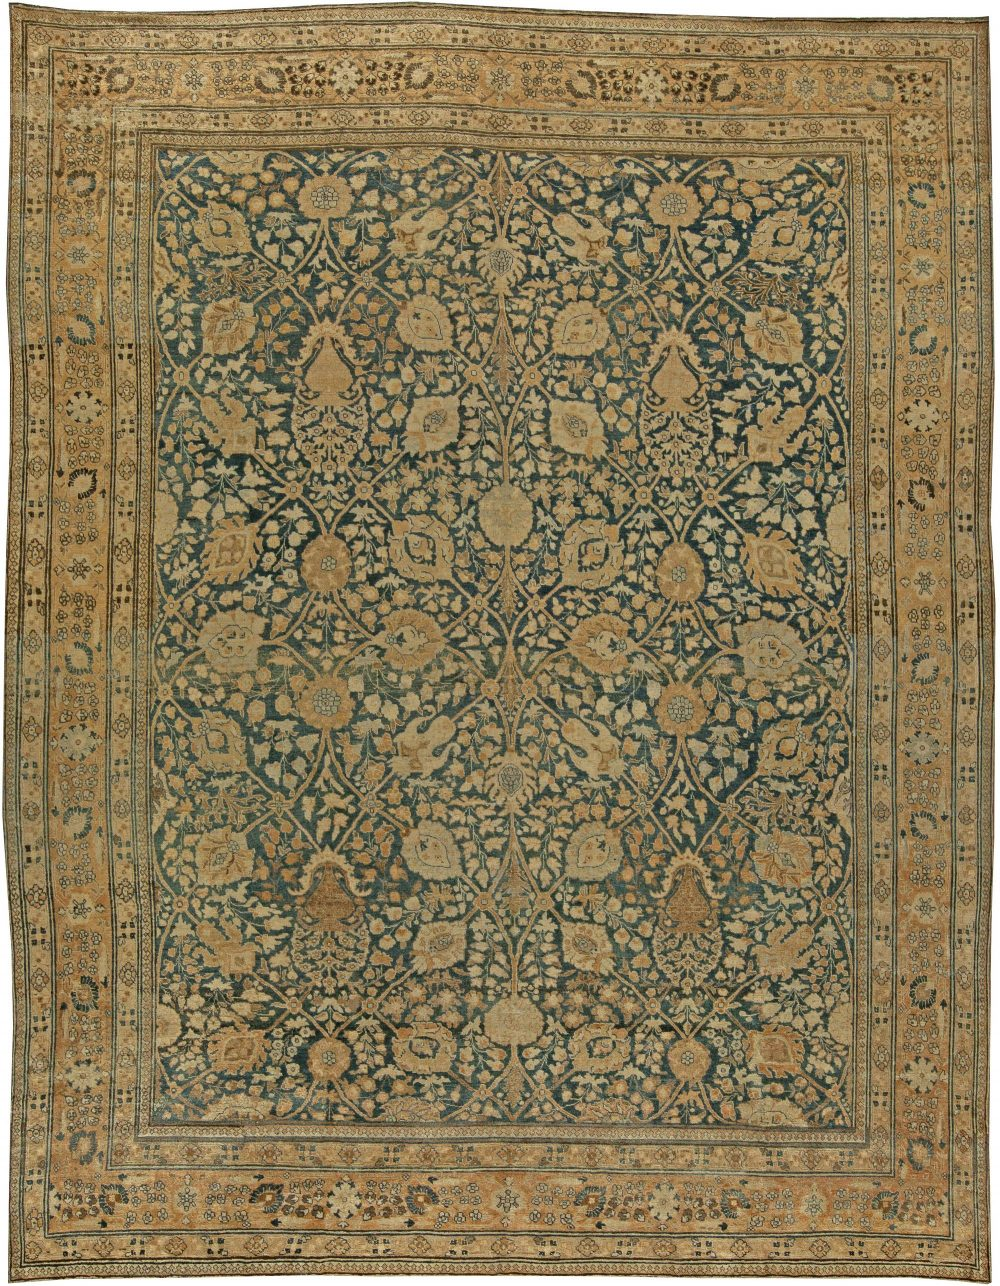 Antique Persian Tabriz Rug BB6031